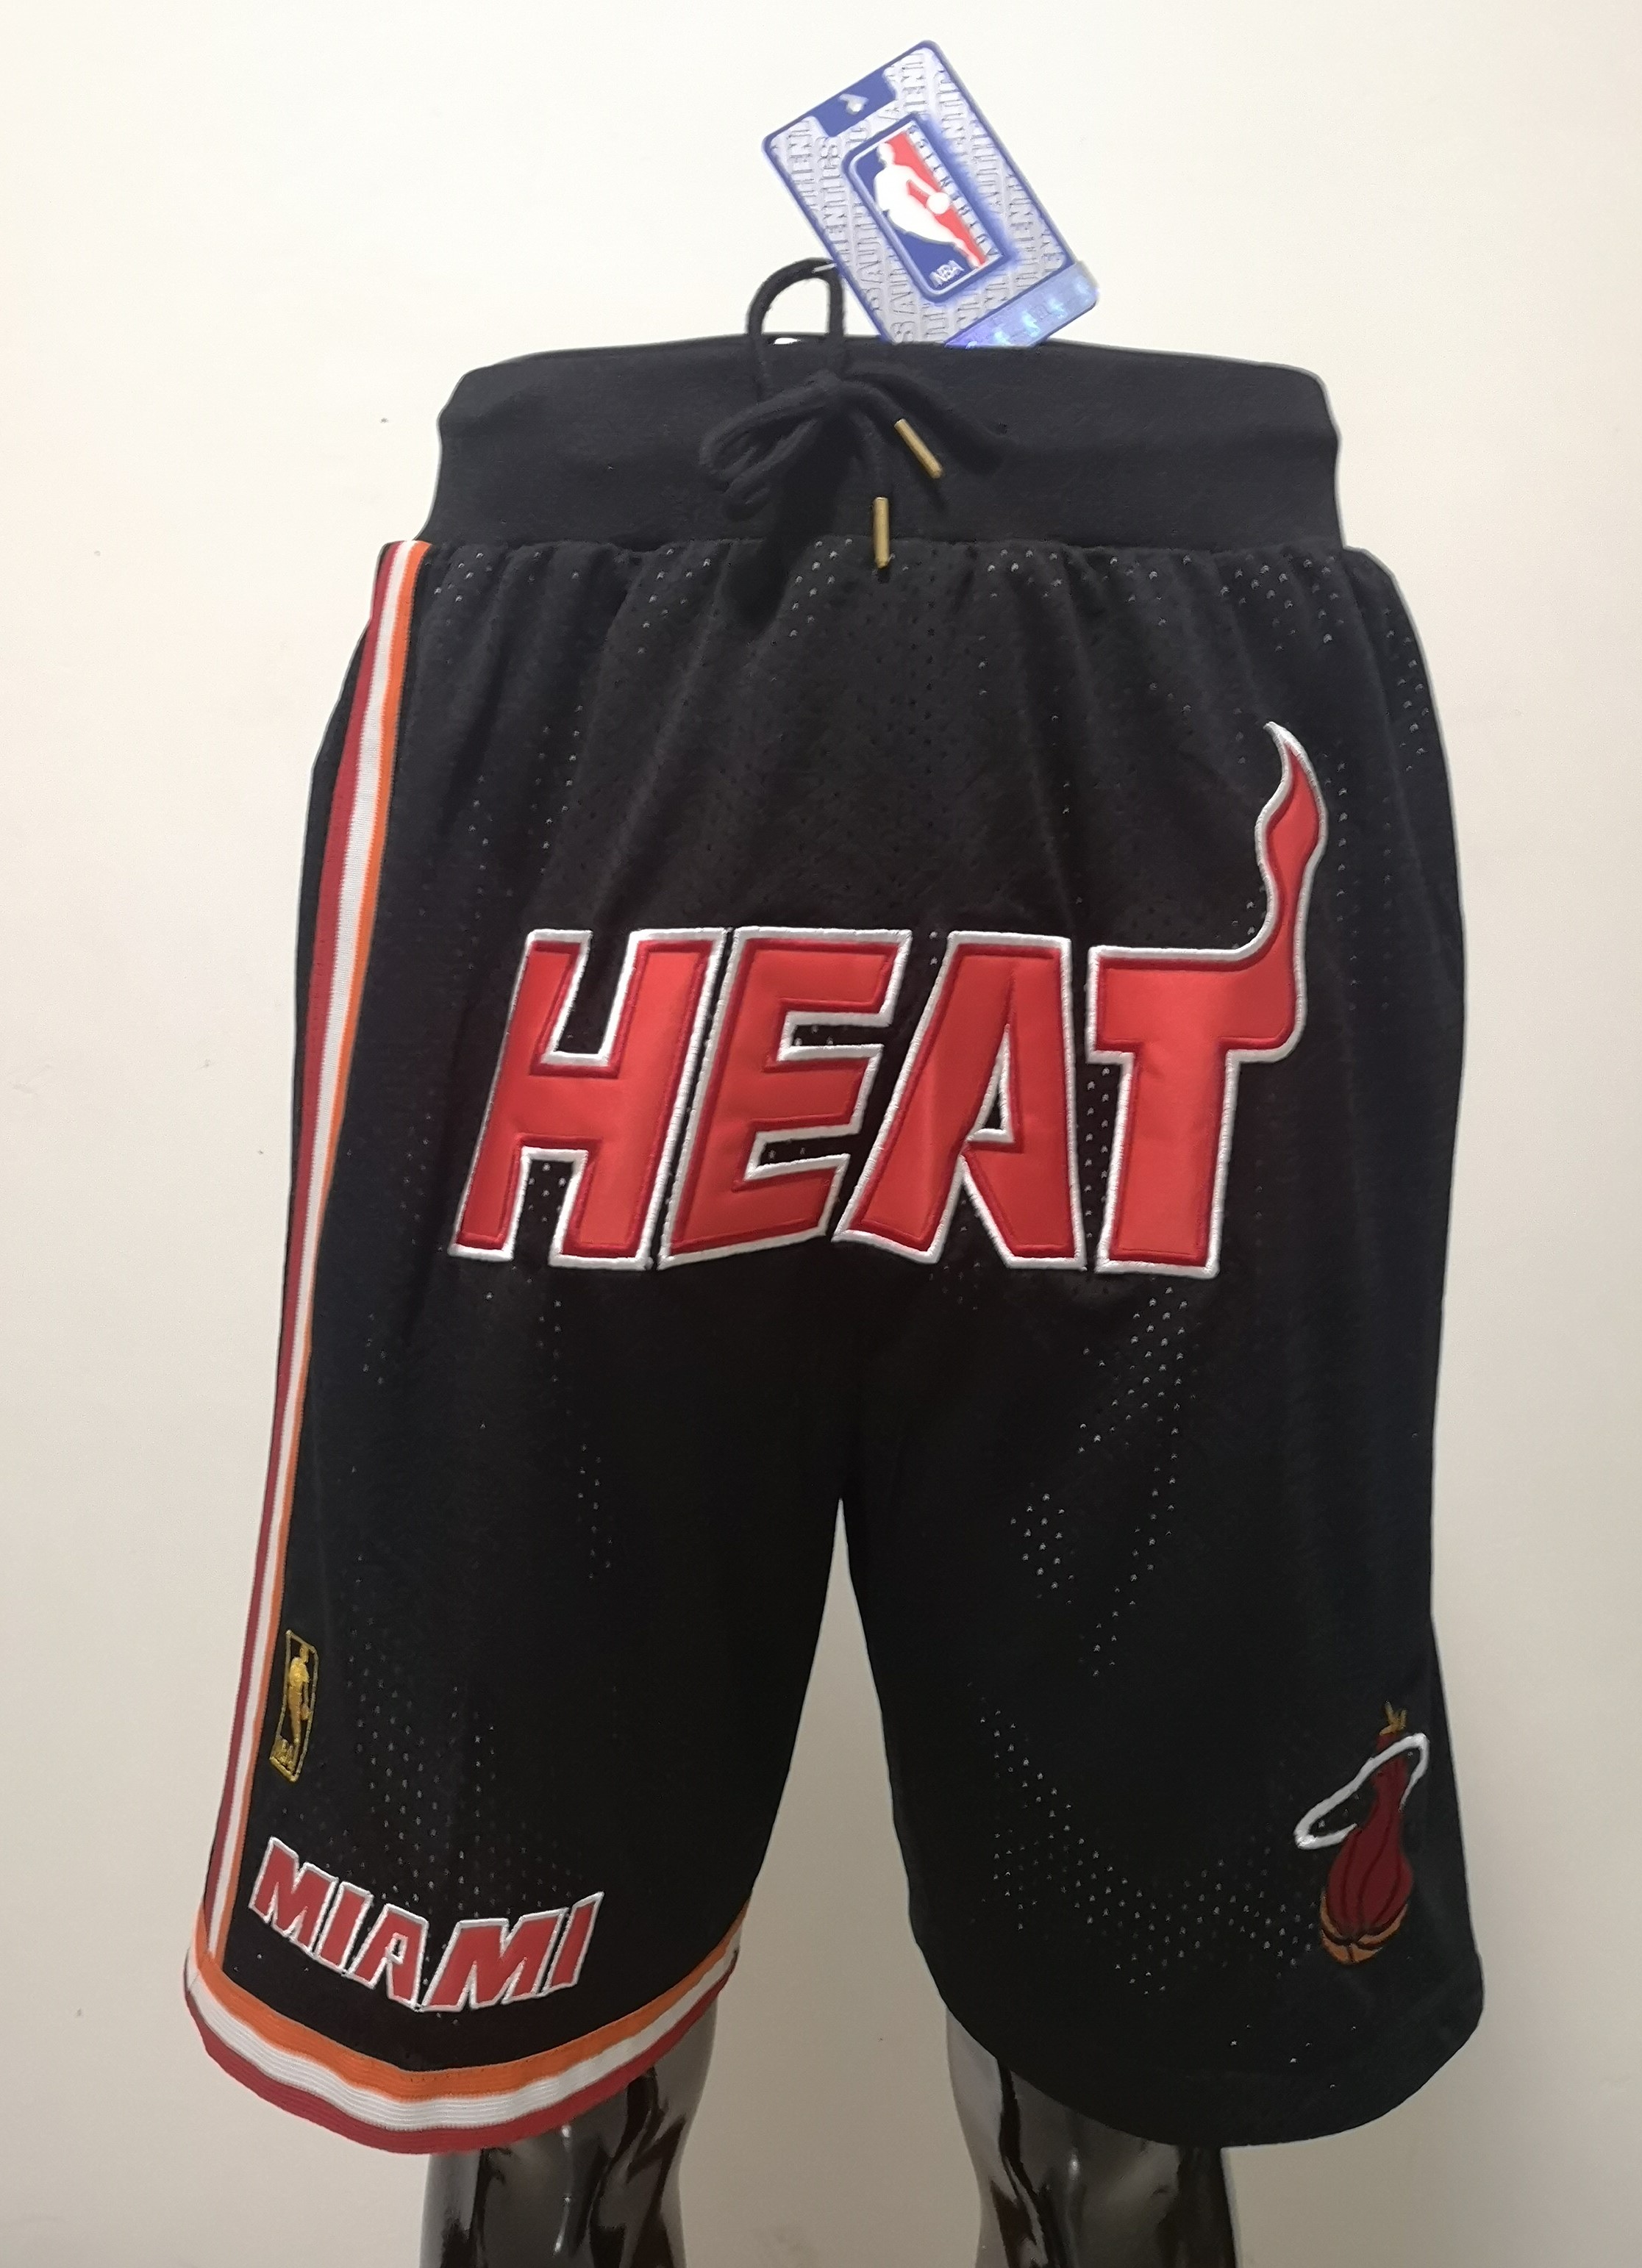 2020 Men NBA Miami Heat black shorts